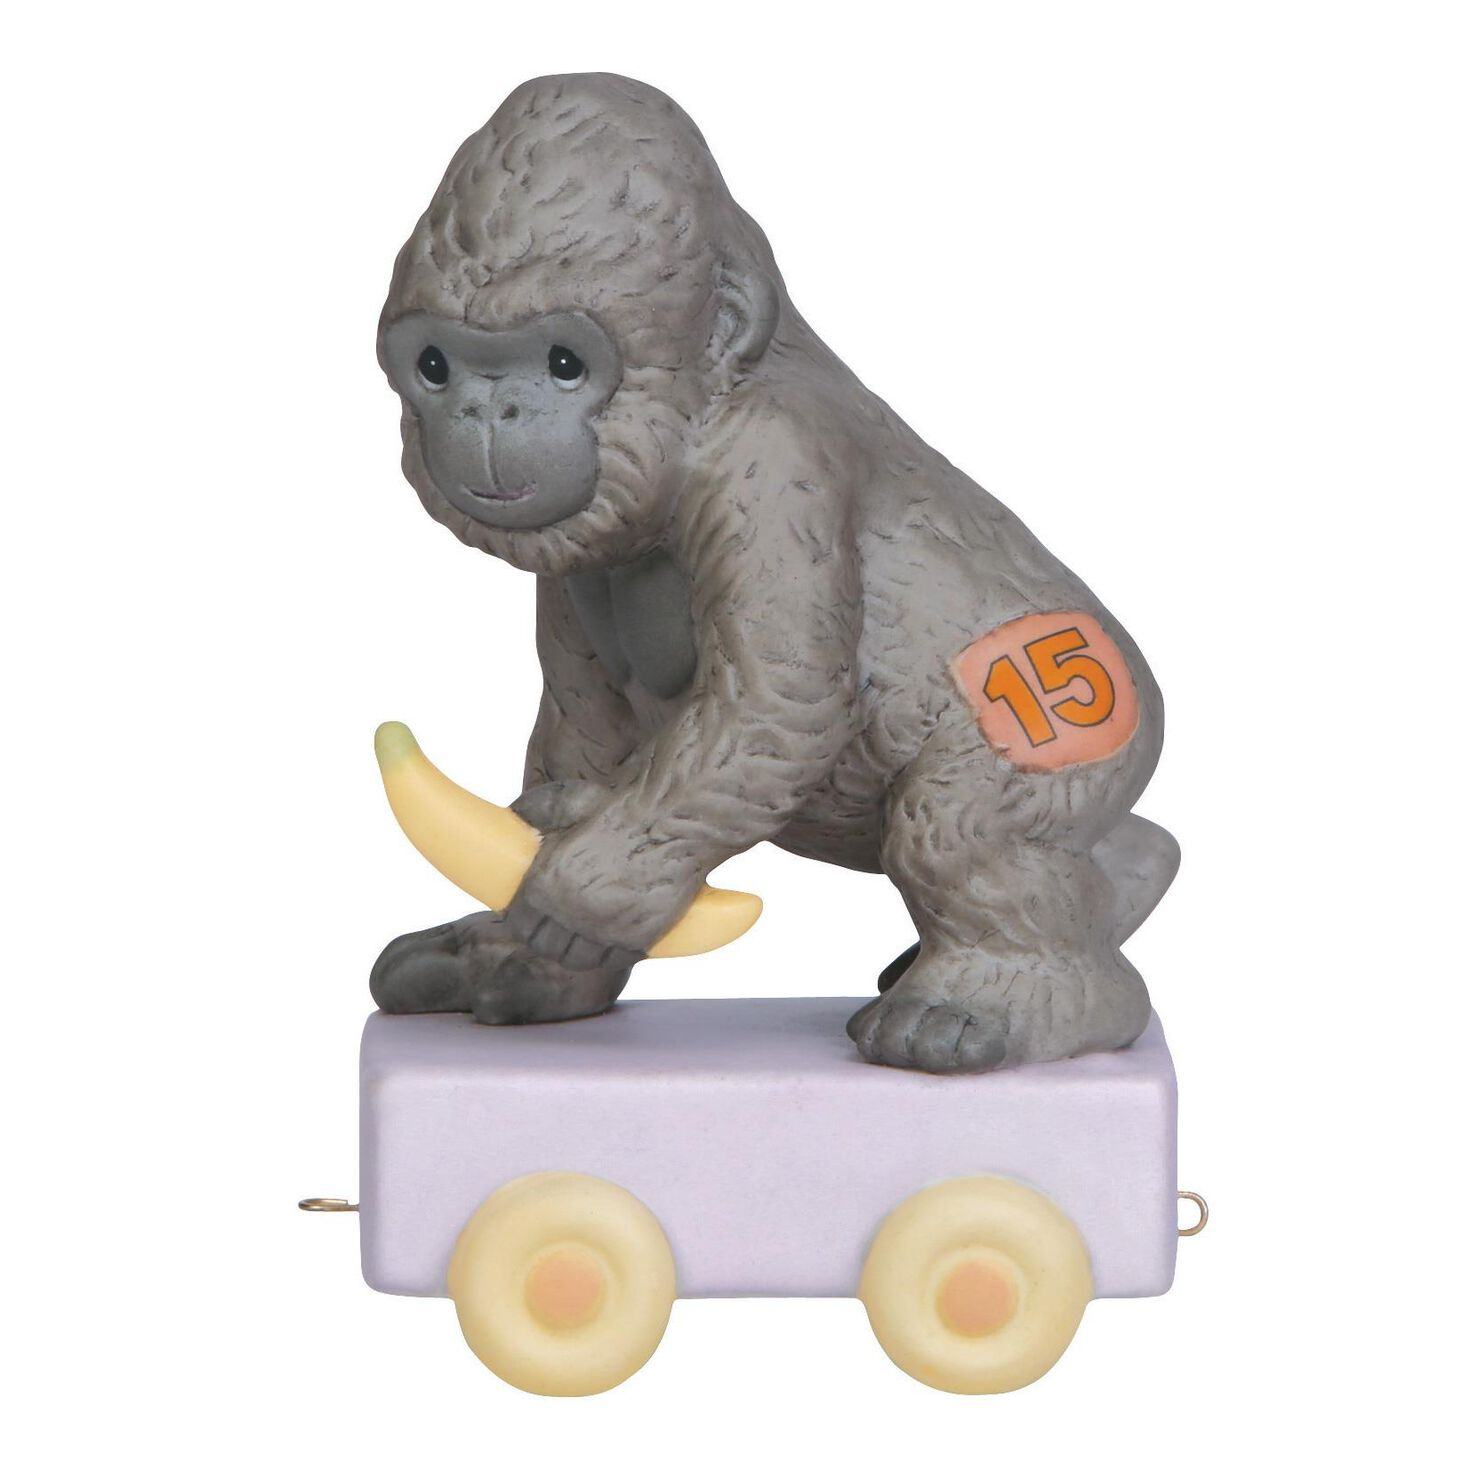 Precious moments it 39 s your birthday go bananas gorilla figurine age 15 figurines hallmark - Gorilla figurines ...